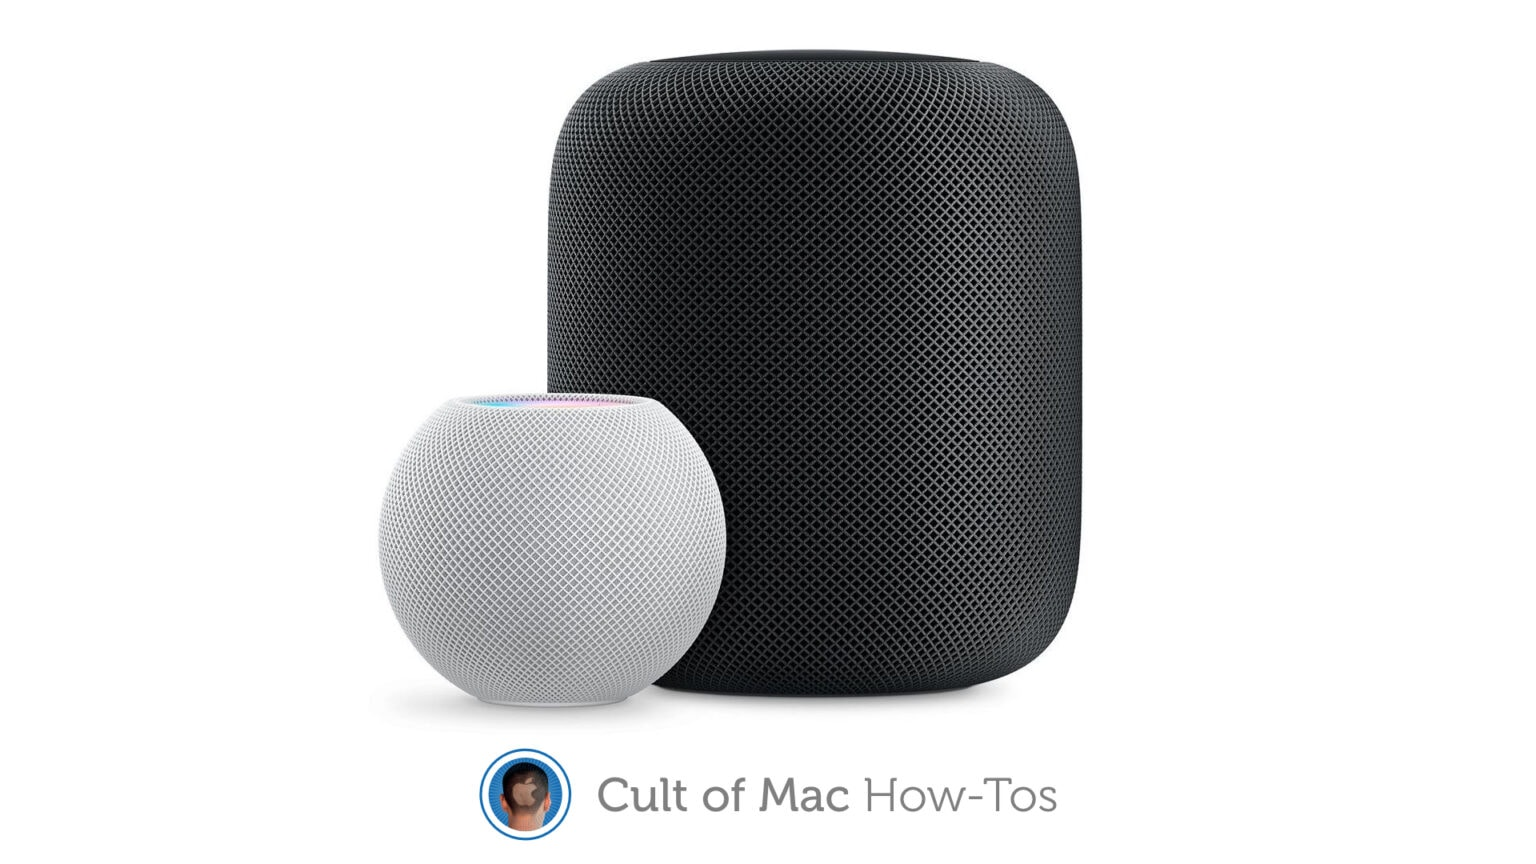 How to choose which HomePod listens to you